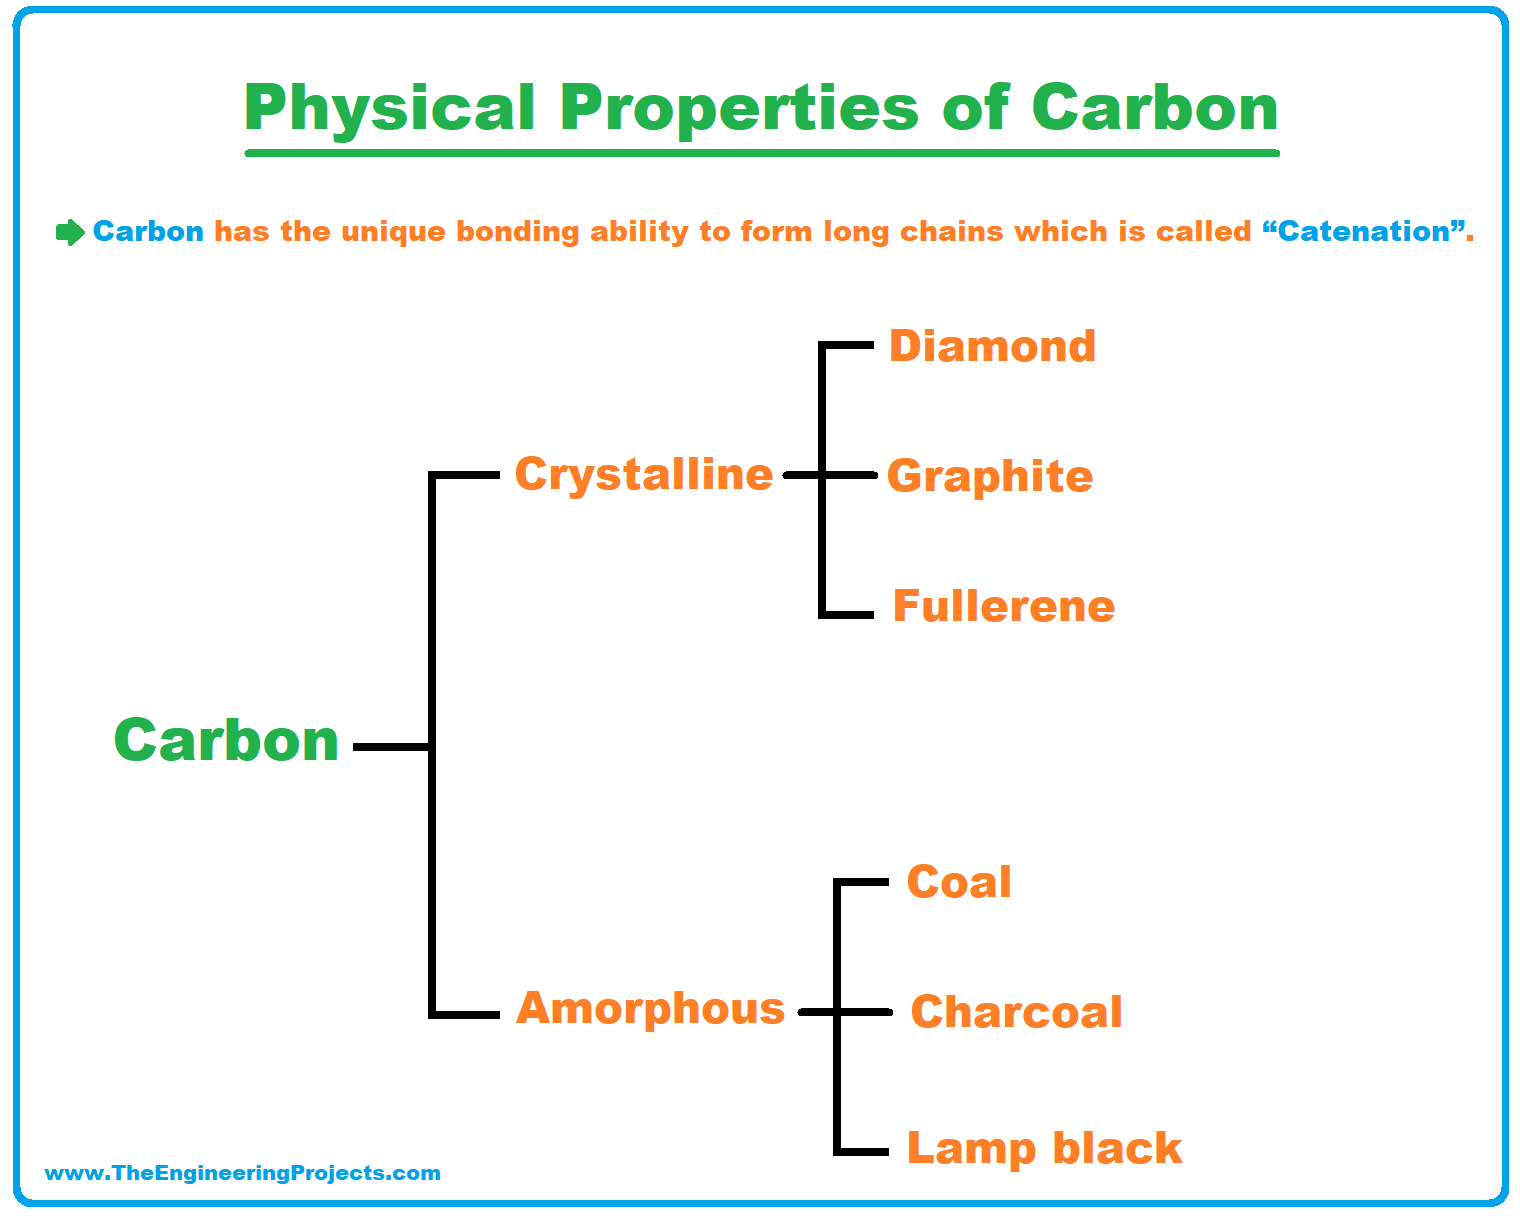 History of Periodic Table, Periodic Table, periodic table deifnition, periodic table group14, group14 of periodic table, carbon family, periodic table trends, physical properties of carbon